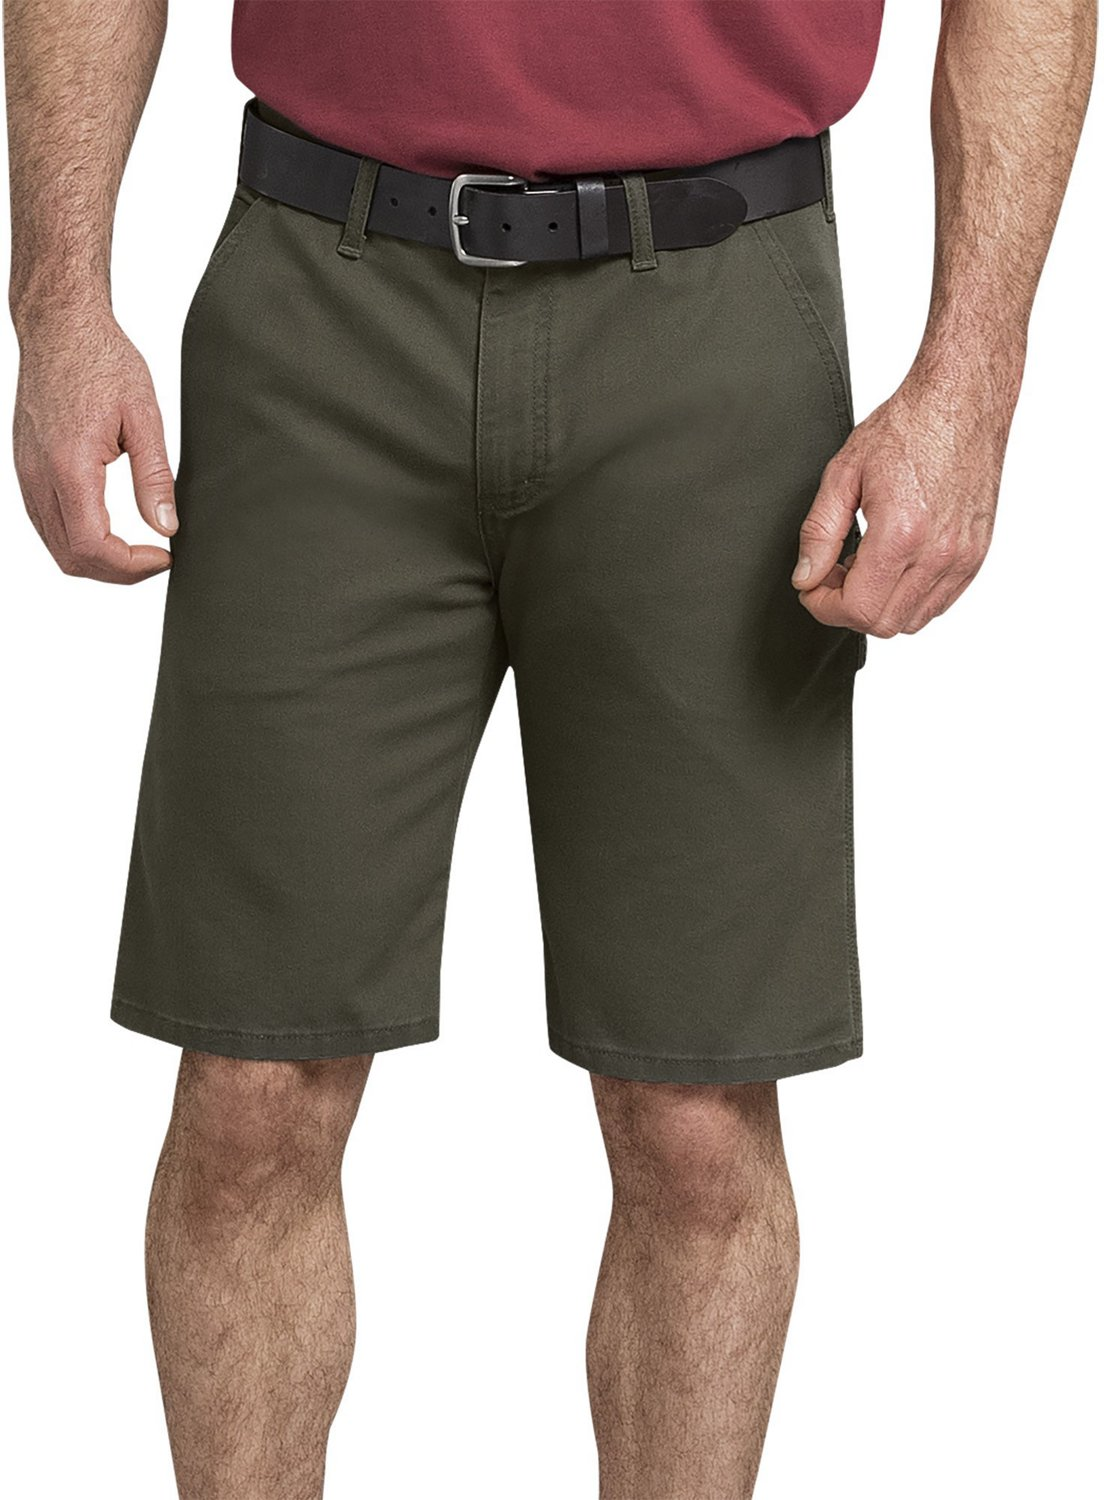 efcd8c3f65 Display product reviews for Dickies Men's Tough Max Duck Carpenter Shorts